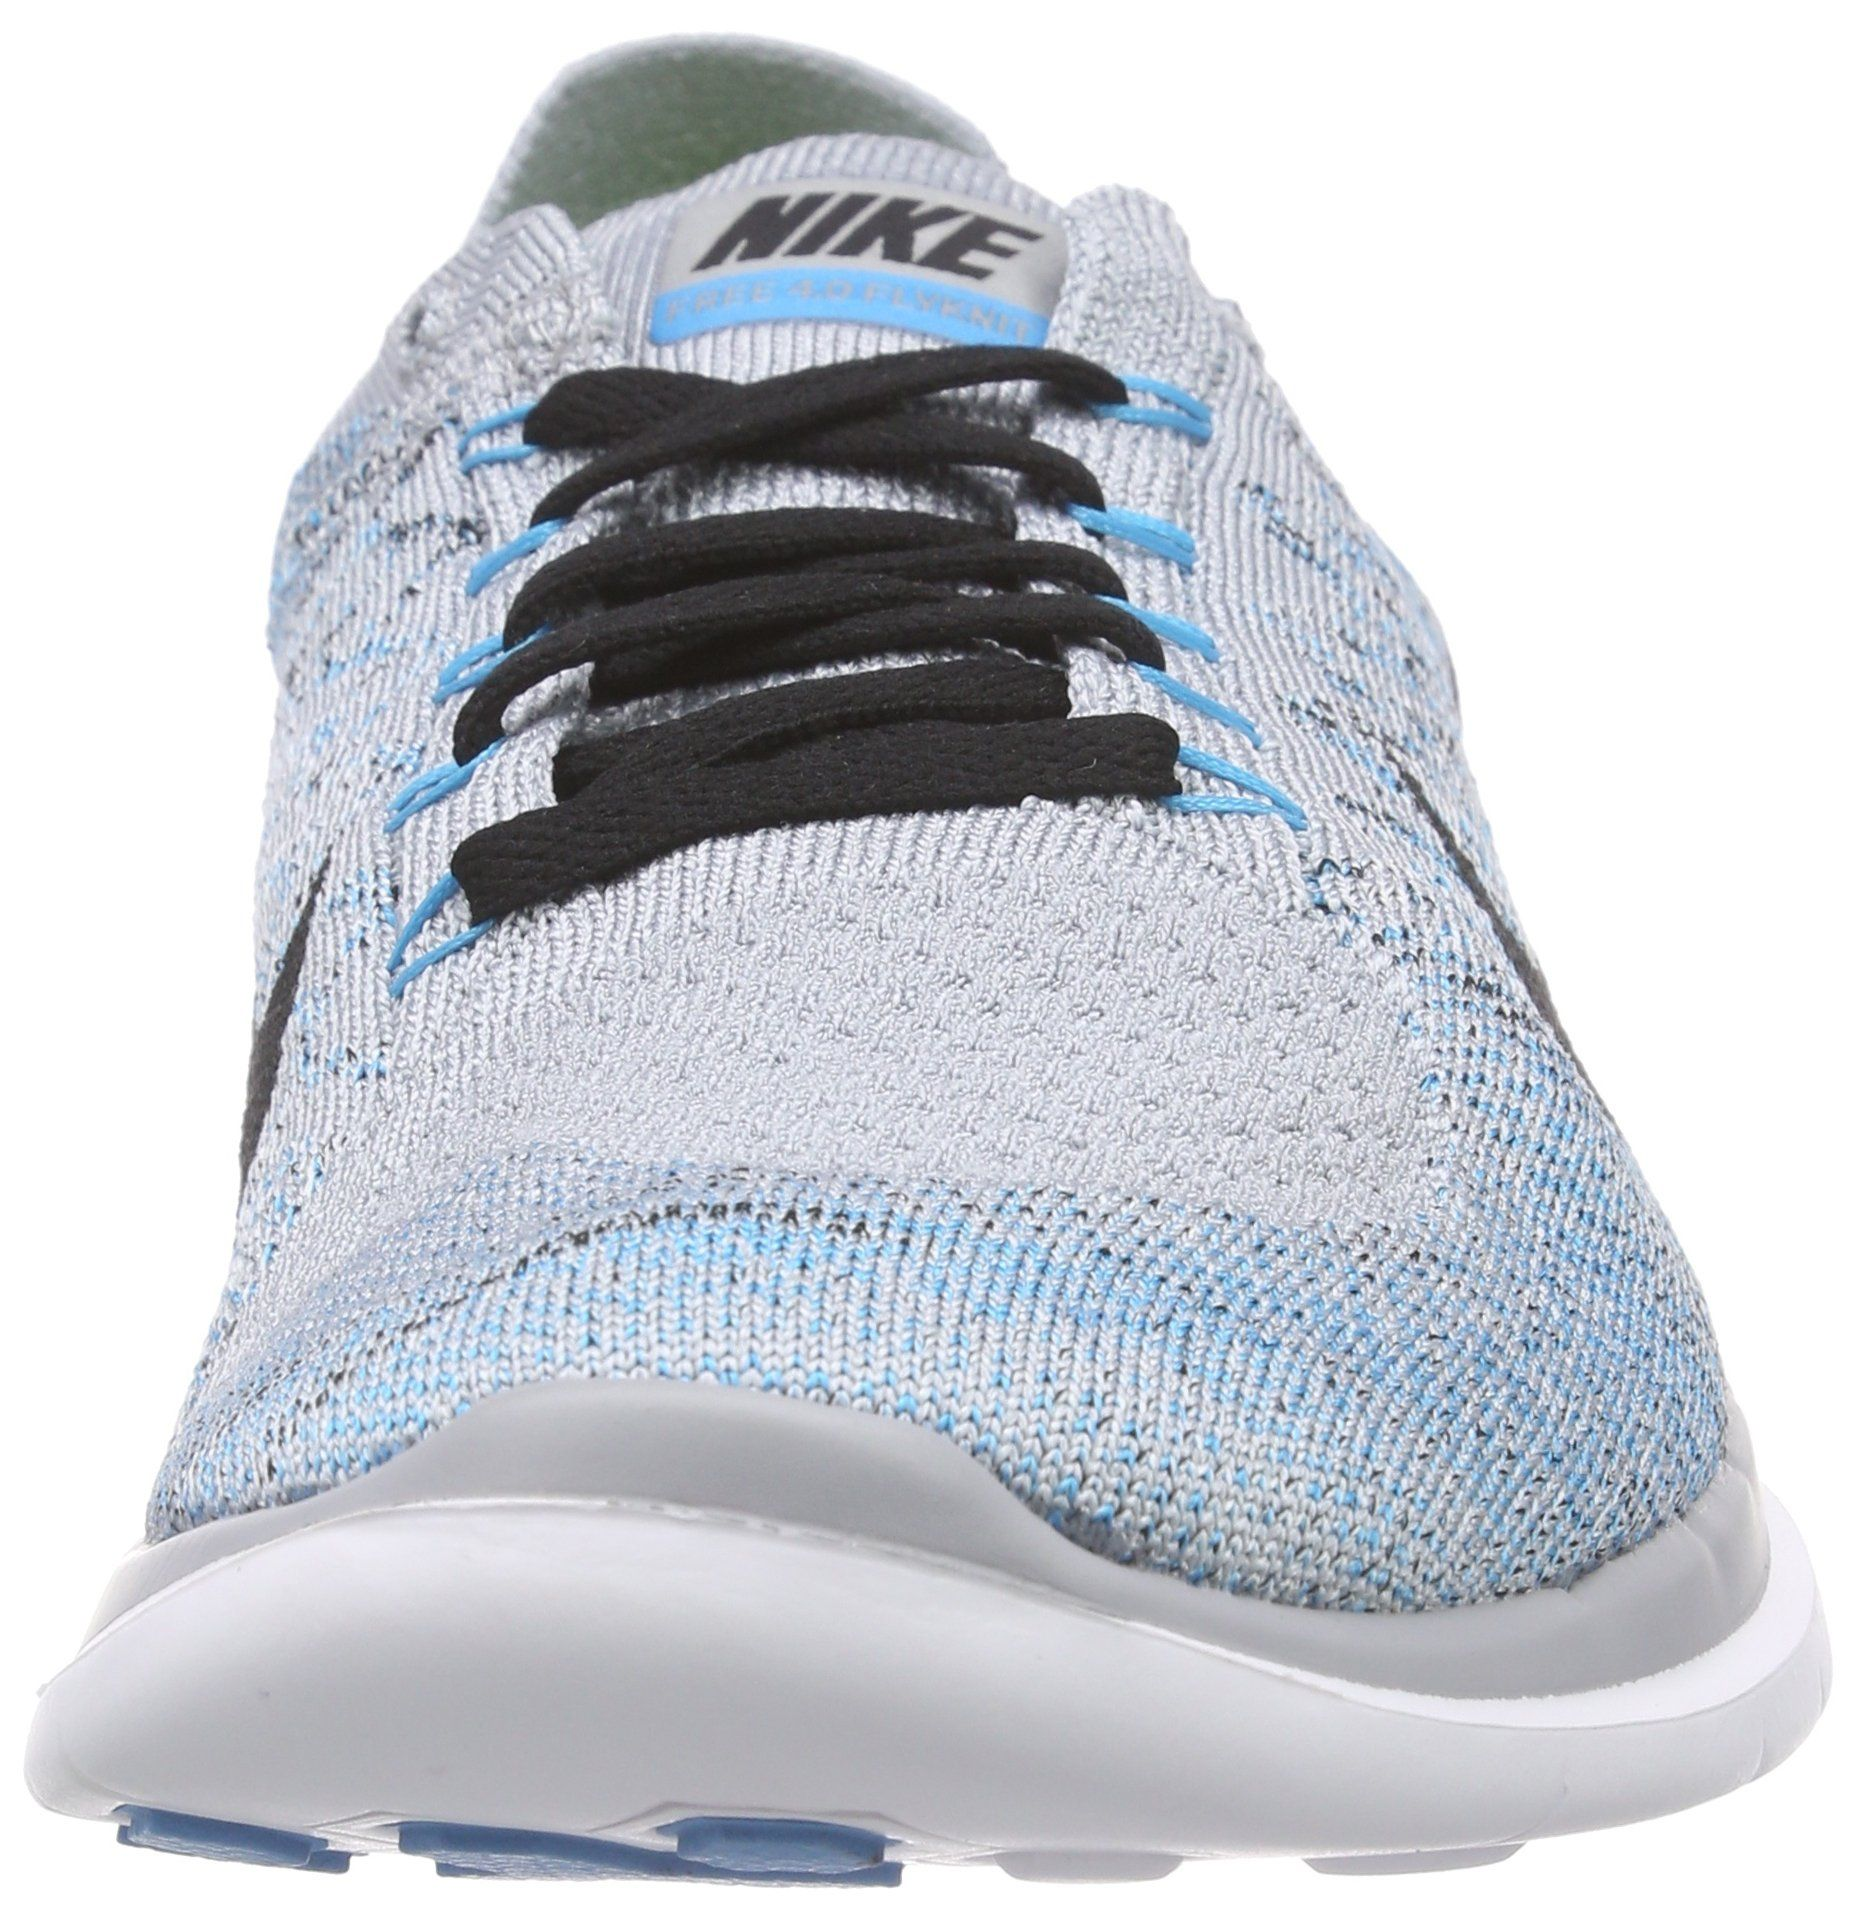 Amazon.com: Nike Free 4.0 Flyknit Sz 10 Mens Running Shoes Grey New In